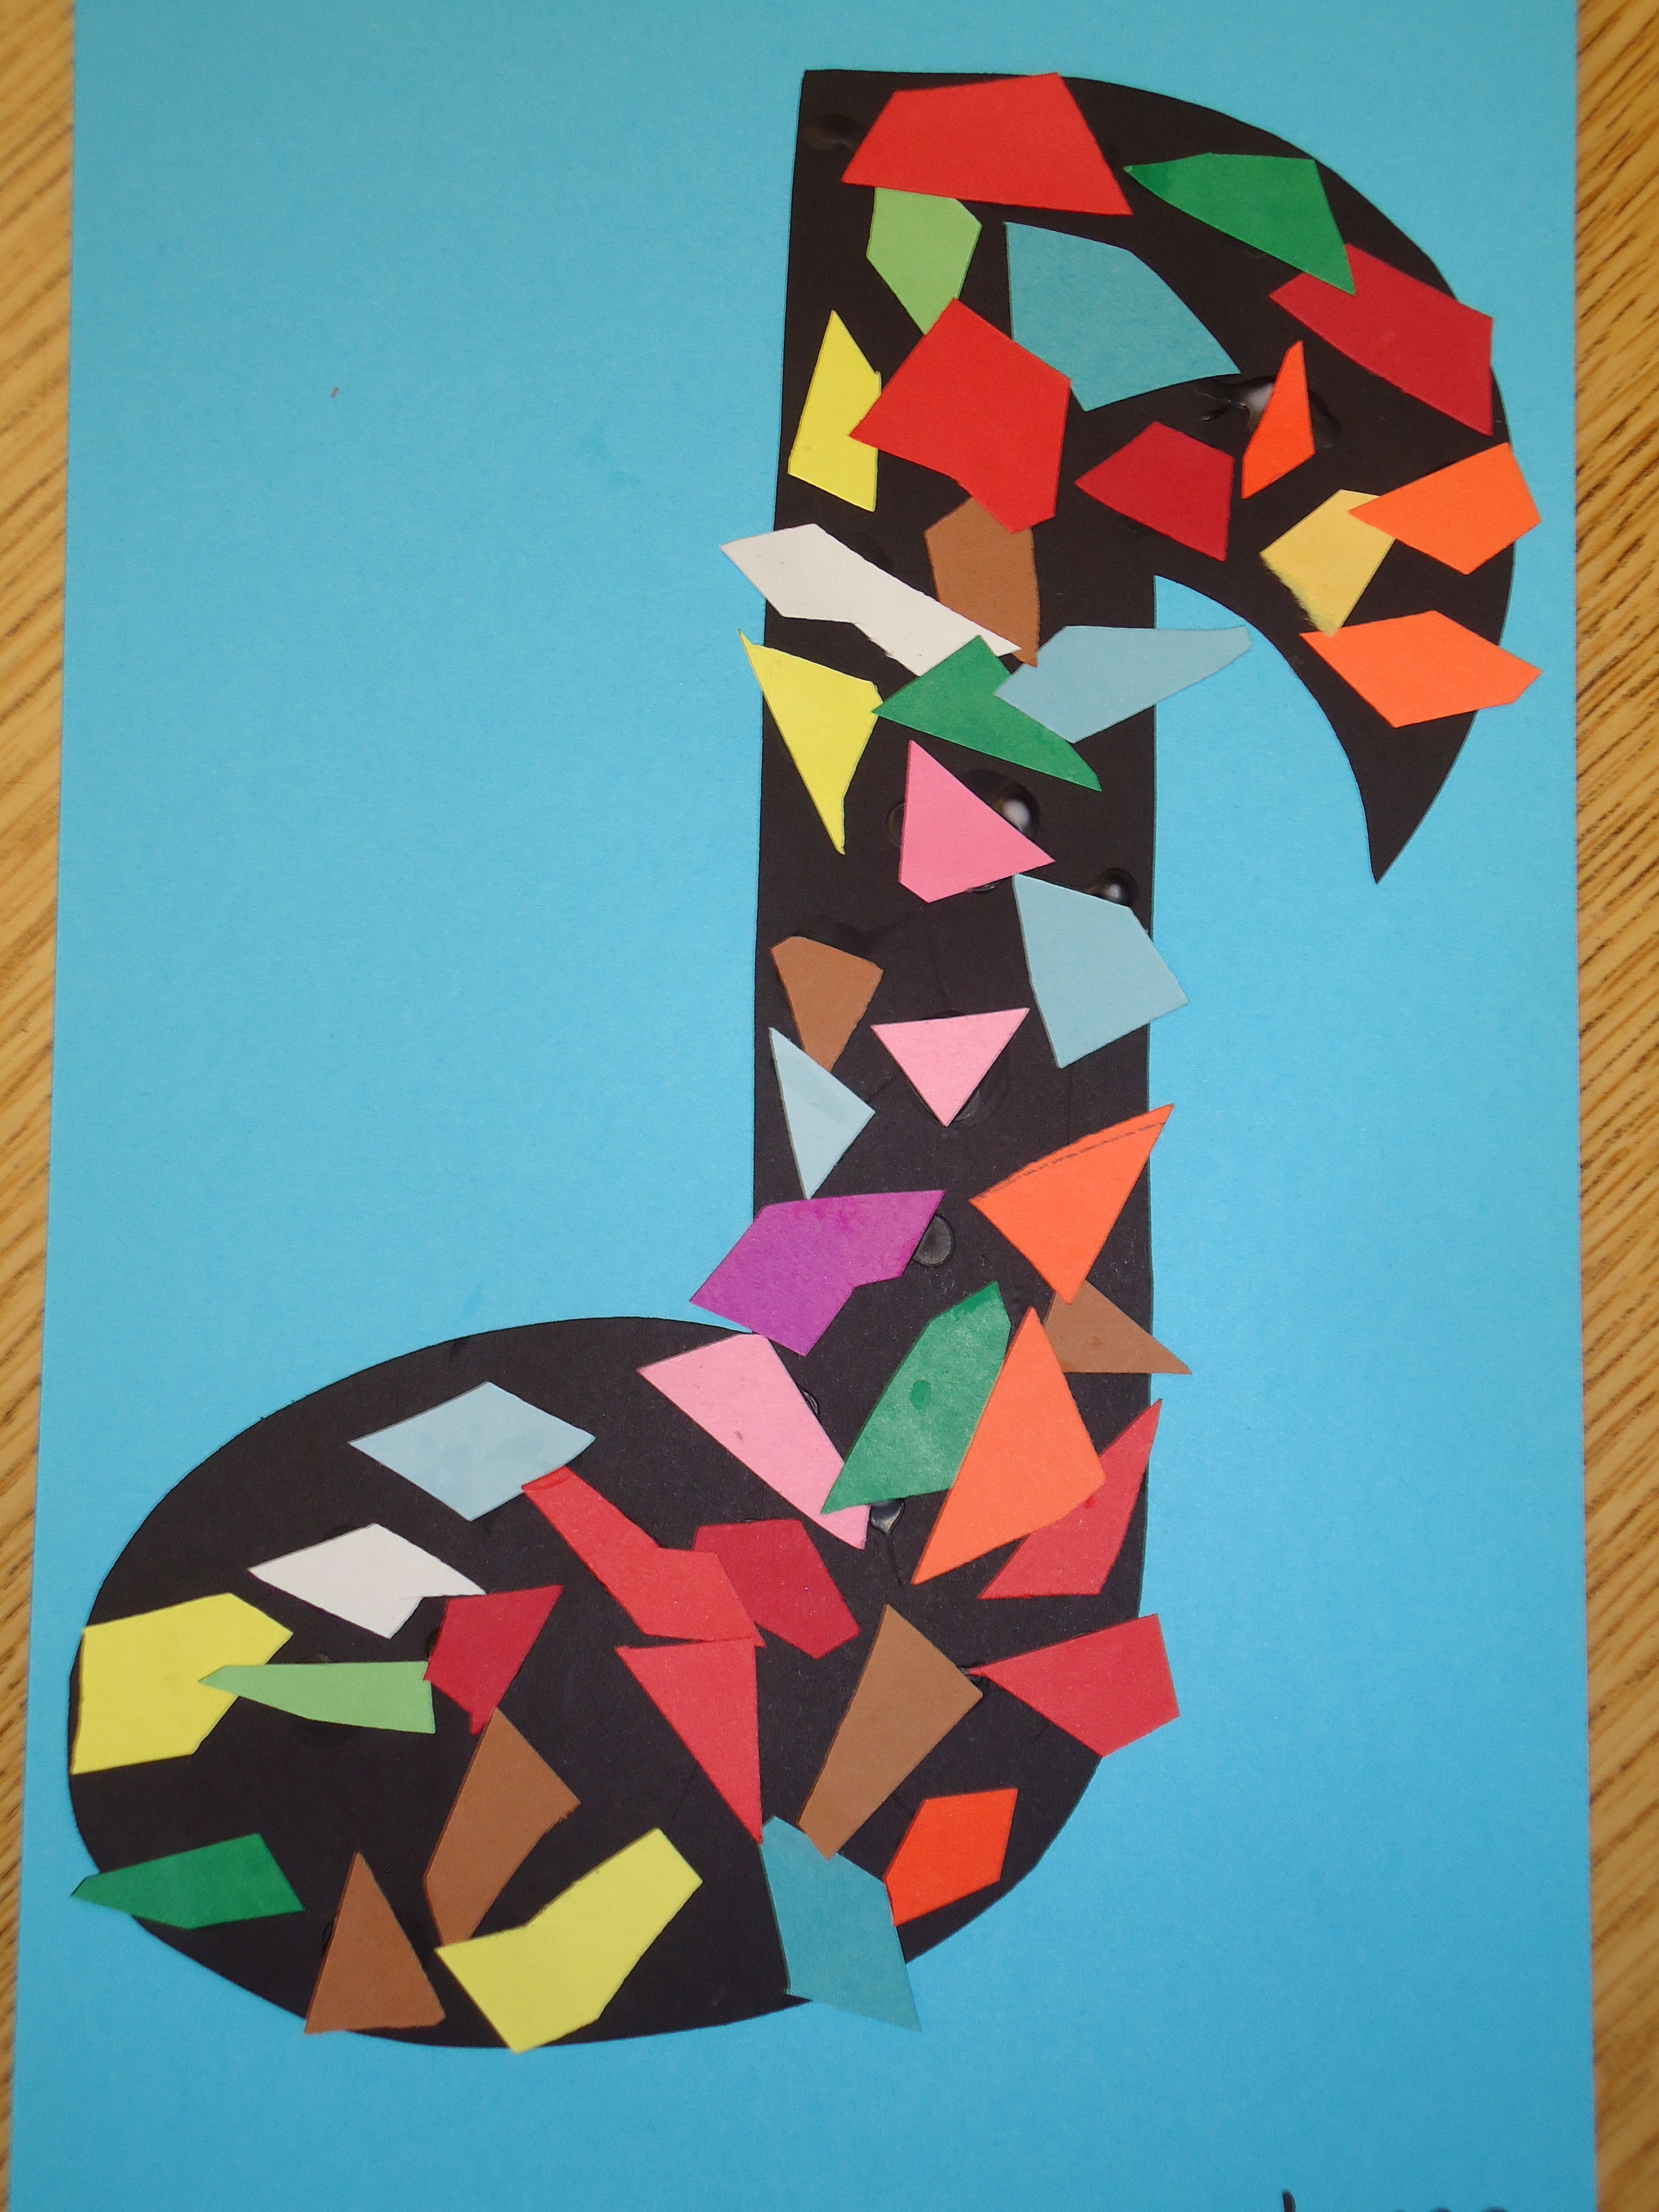 music note | My Pre-K Art | Pinterest | Music notes, Note and ...